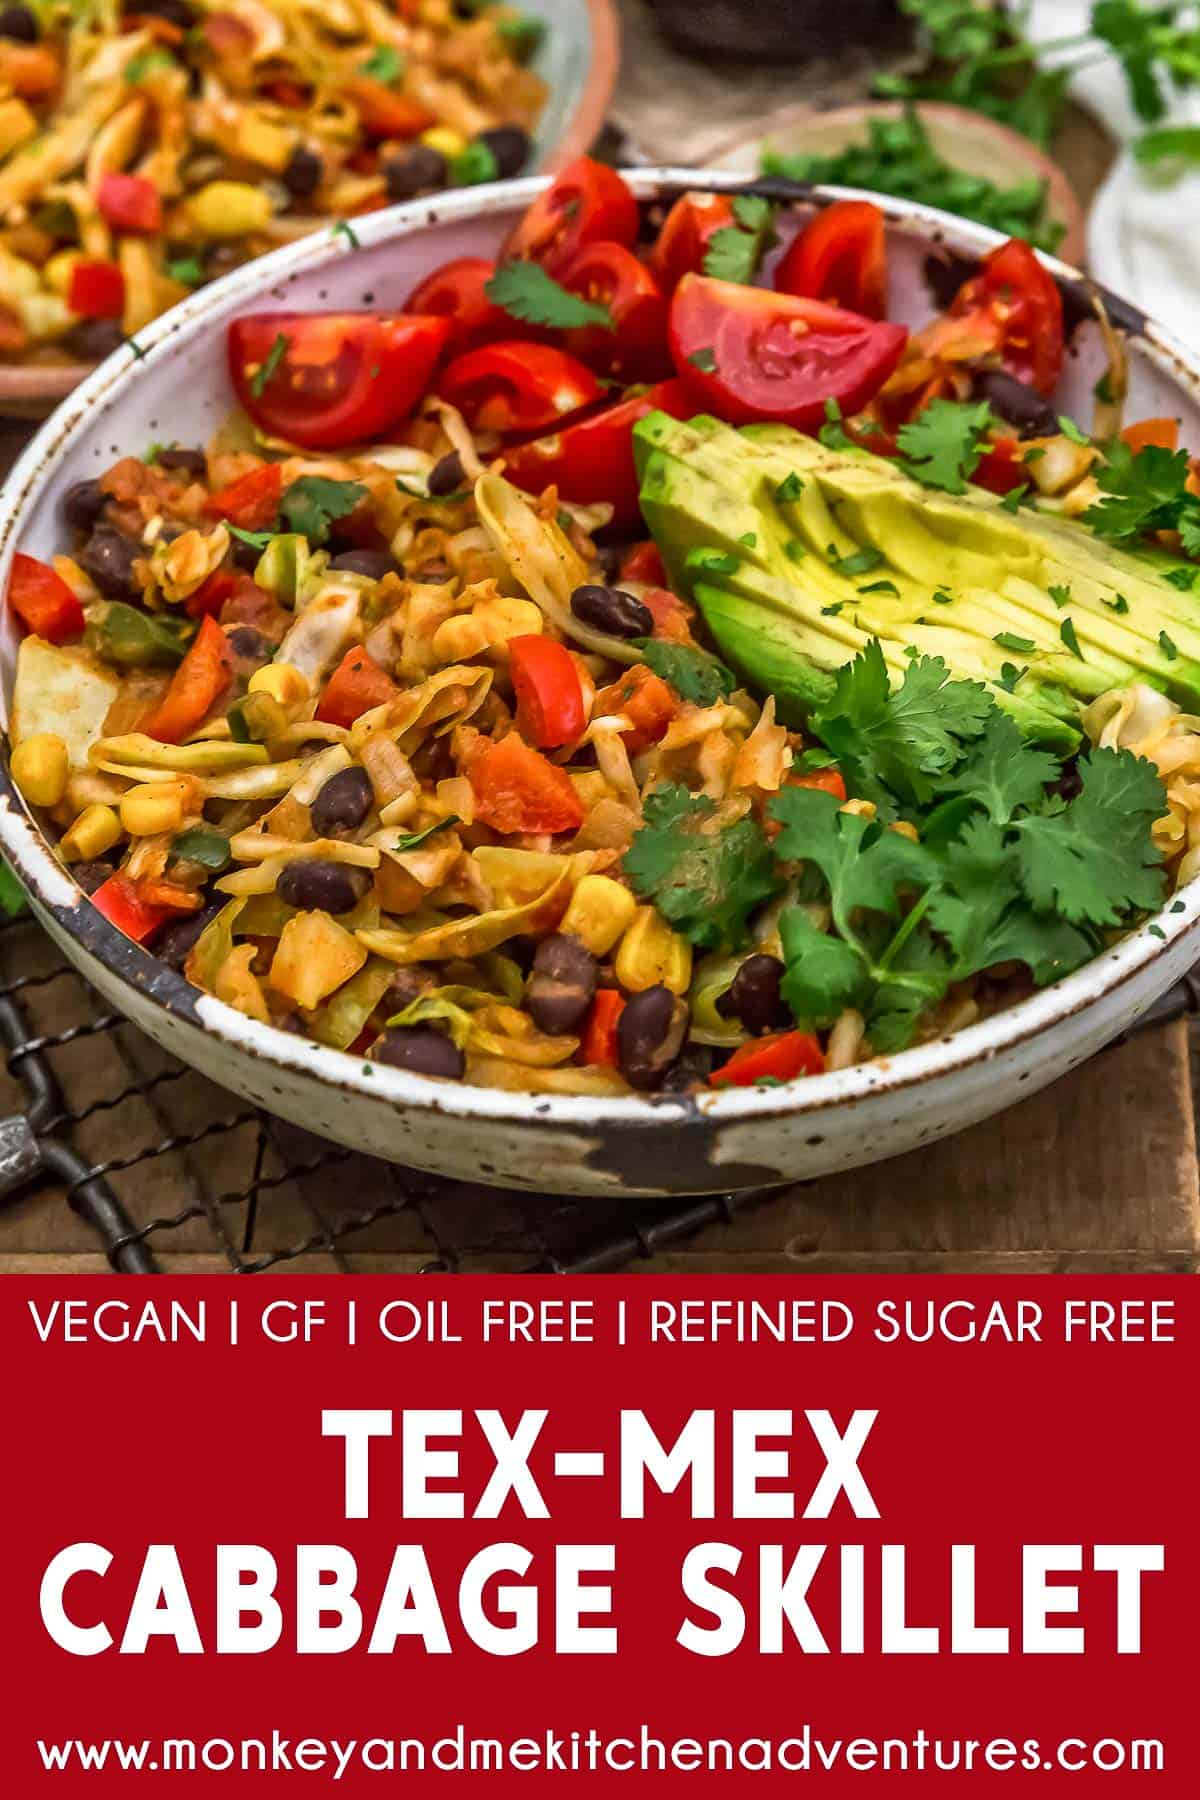 Tex-Mex Cabbage Skillet with text description